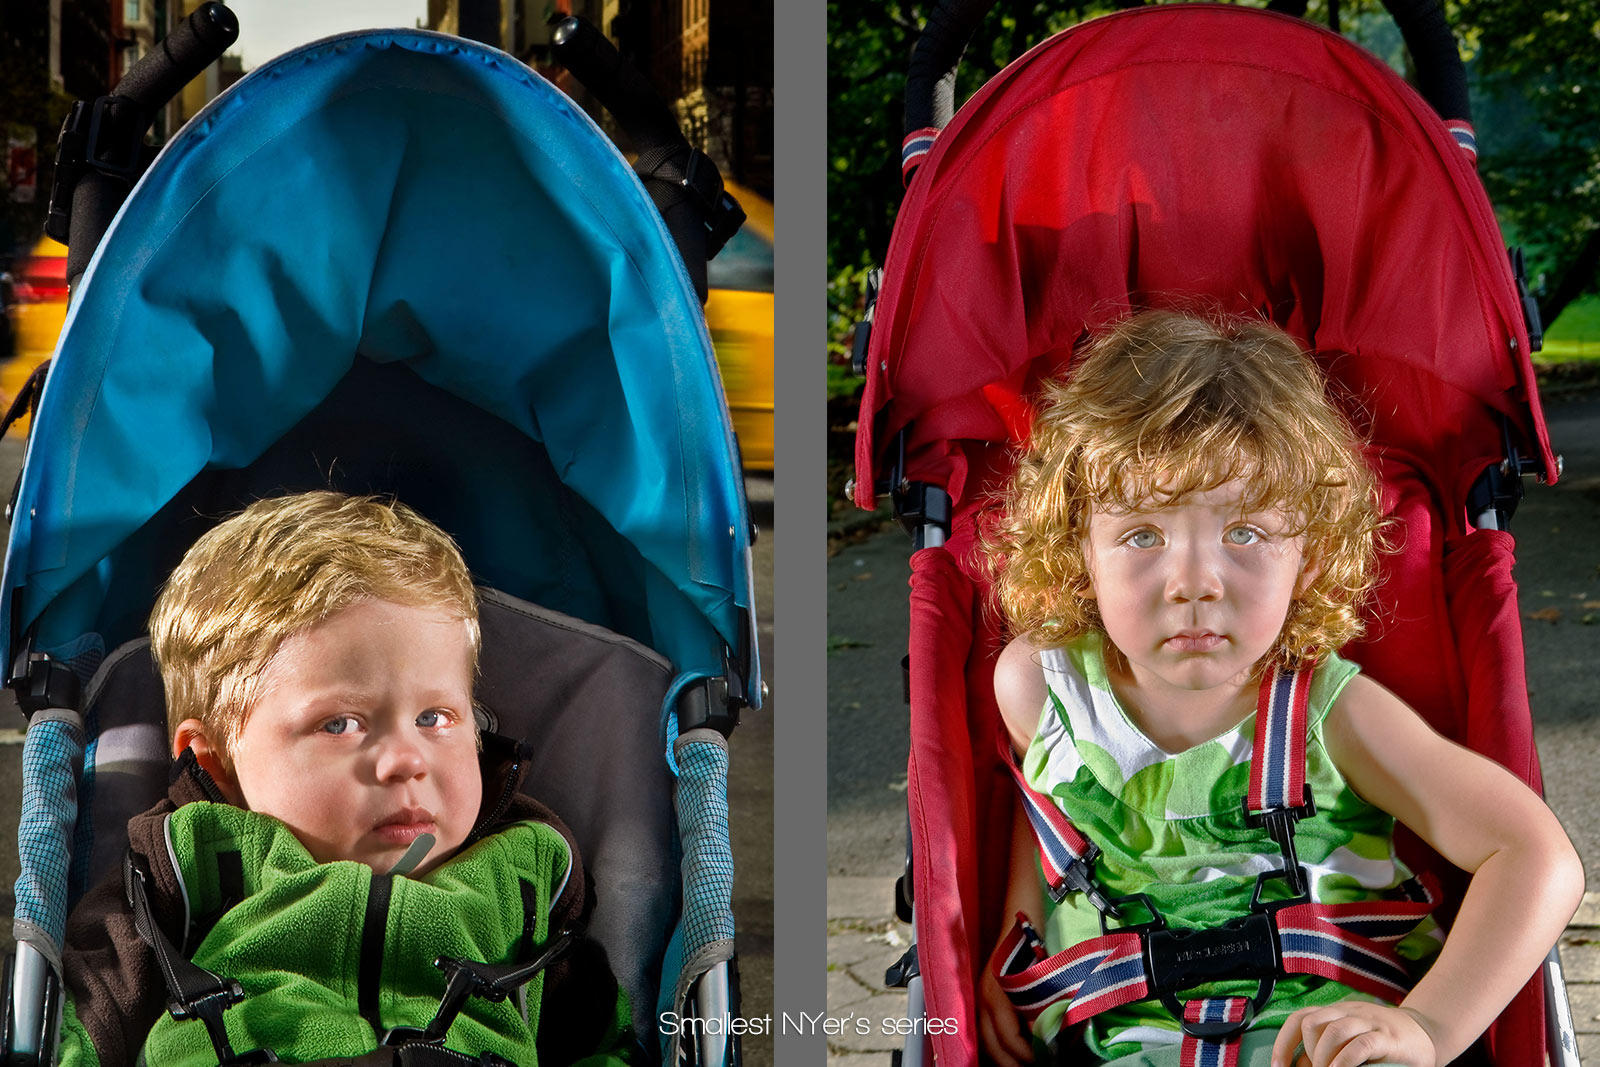 children of New York City from a series titled Smallest NYer's utilizing their strollers as the backdrop for color : Portraits-Keywording : NY - Portrait Photographer Video, Architectural, Corporate Editorial Location Photography